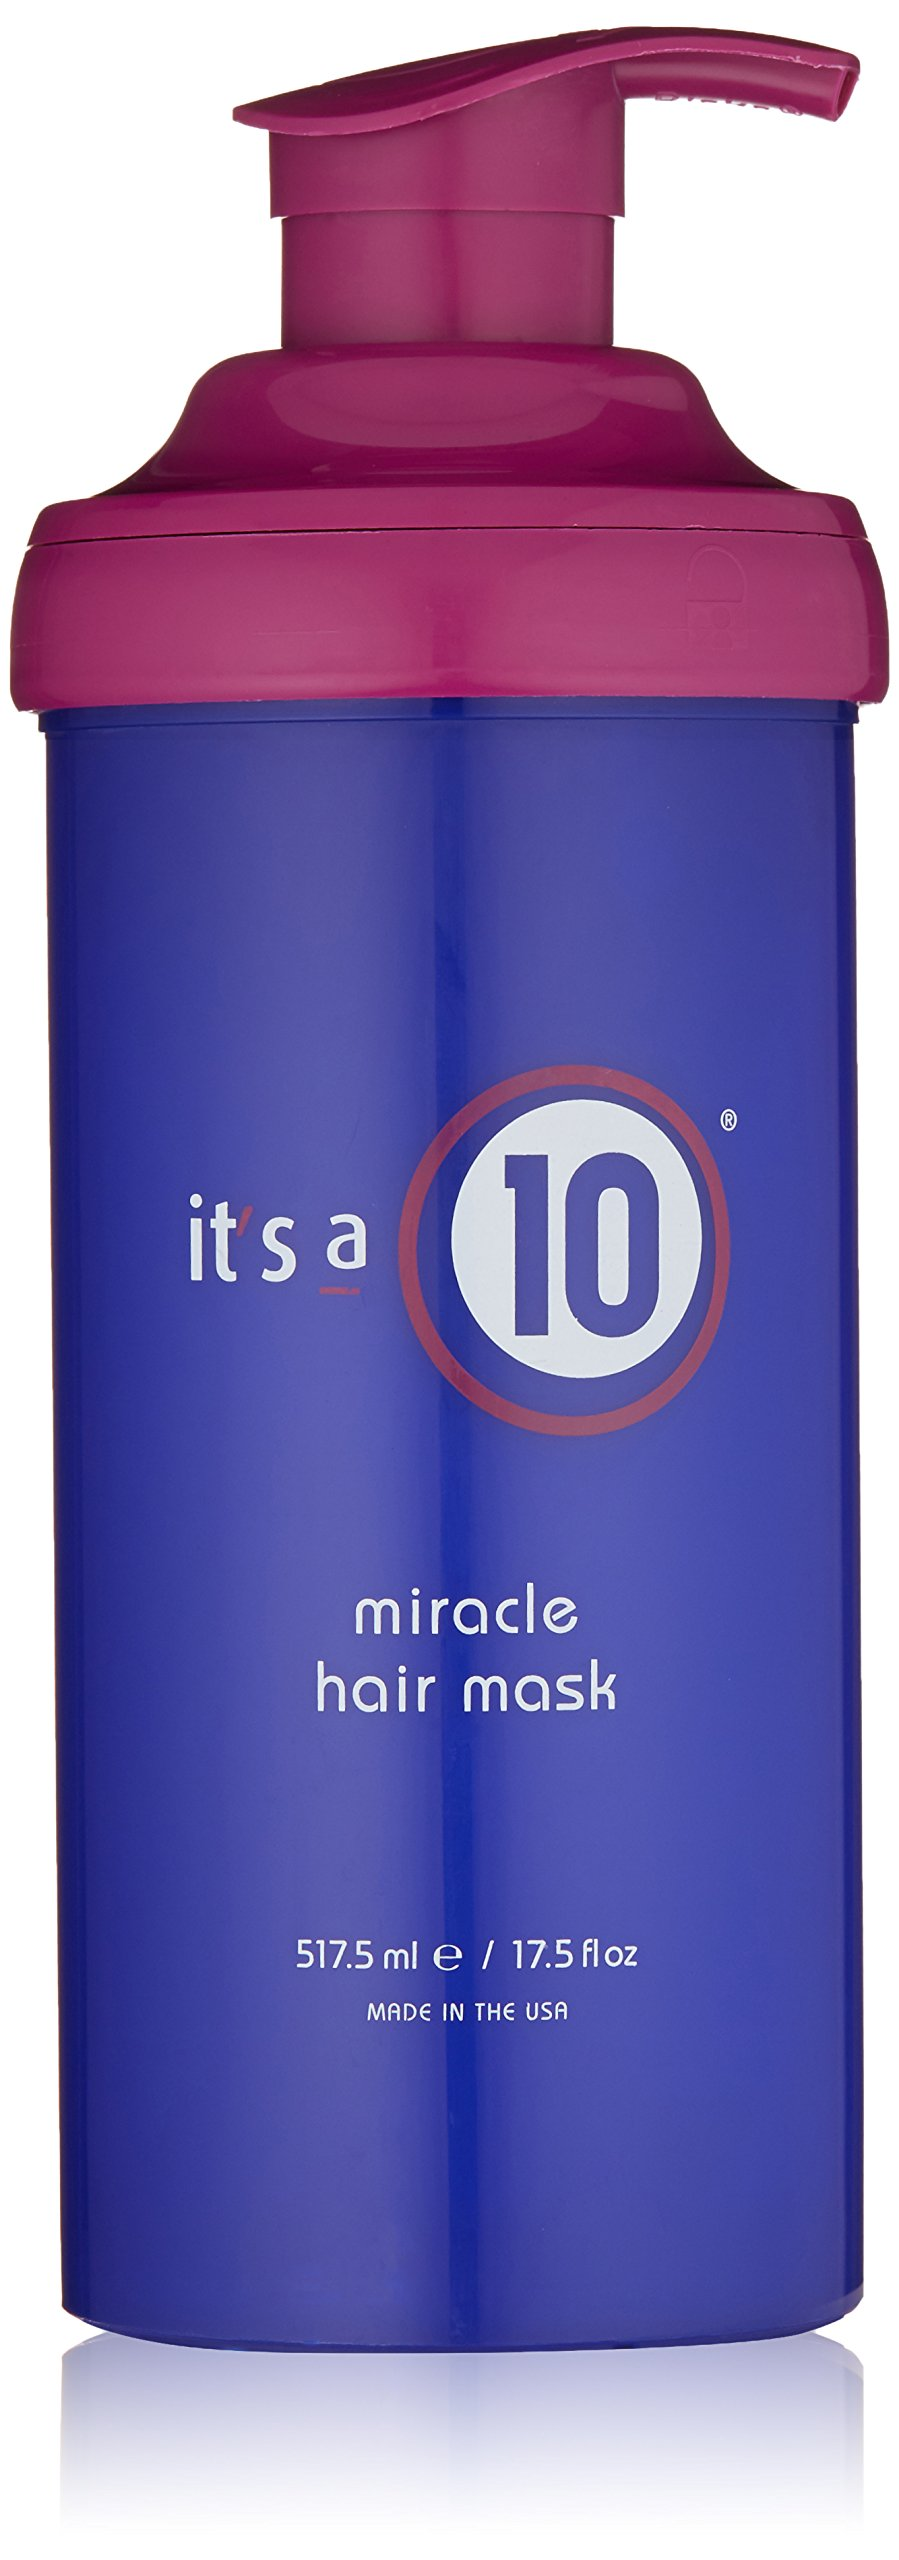 It's a 10 Miracle Hair Mask Hair And Scalp Treatments (17.5 oz) by It's a 10 Haircare